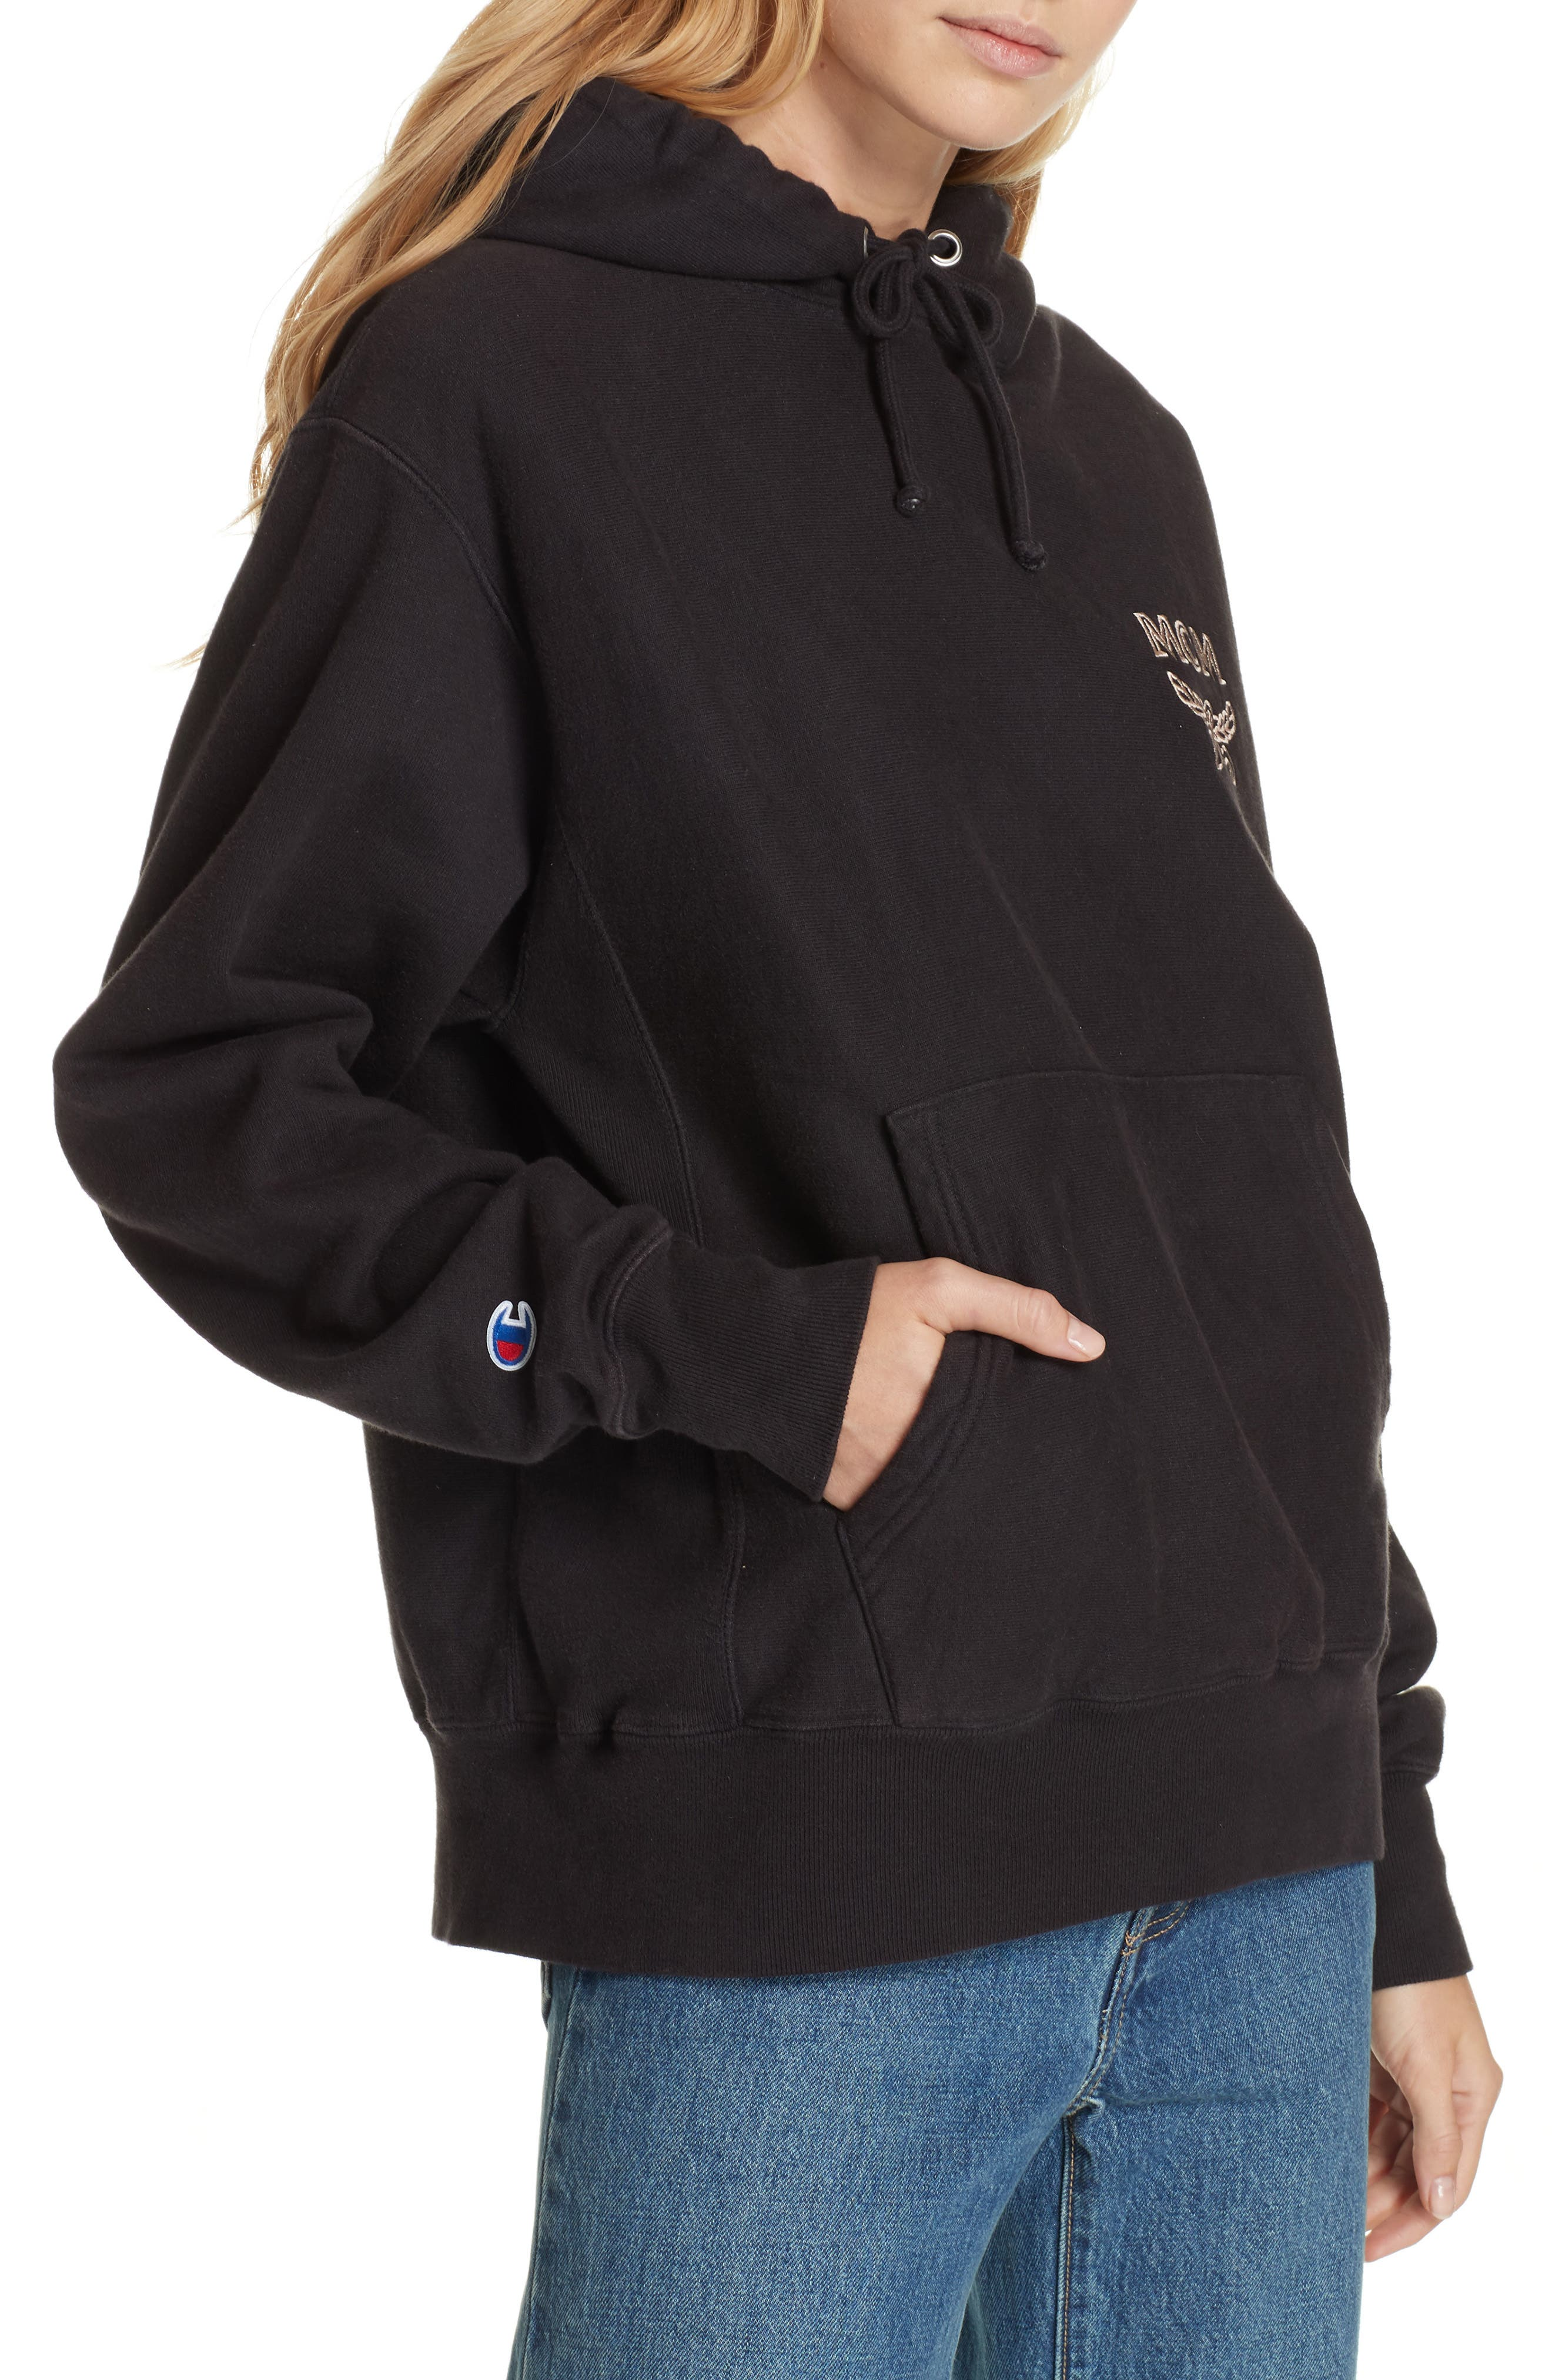 x MCM Pullover Hoodie,                             Alternate thumbnail 5, color,                             001